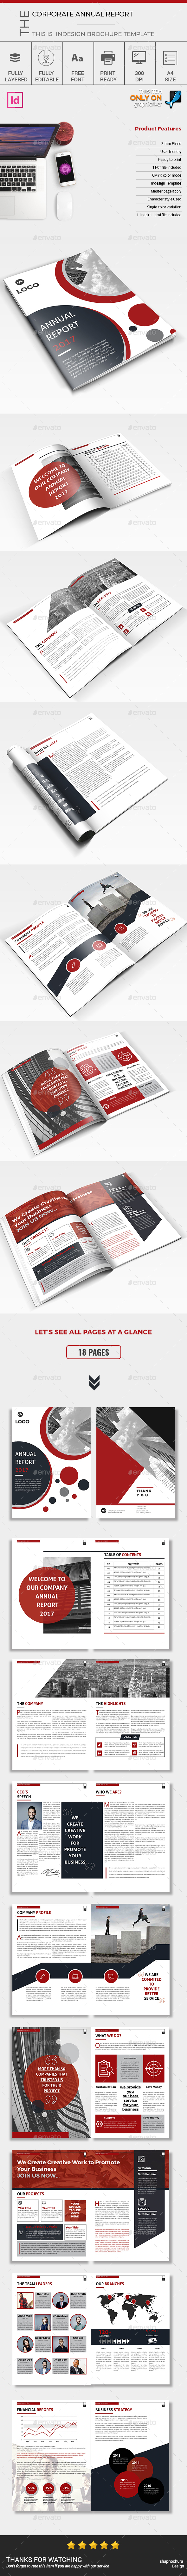 Annual Report 2017 Template InDesign INDD | Annual Report Designs ...